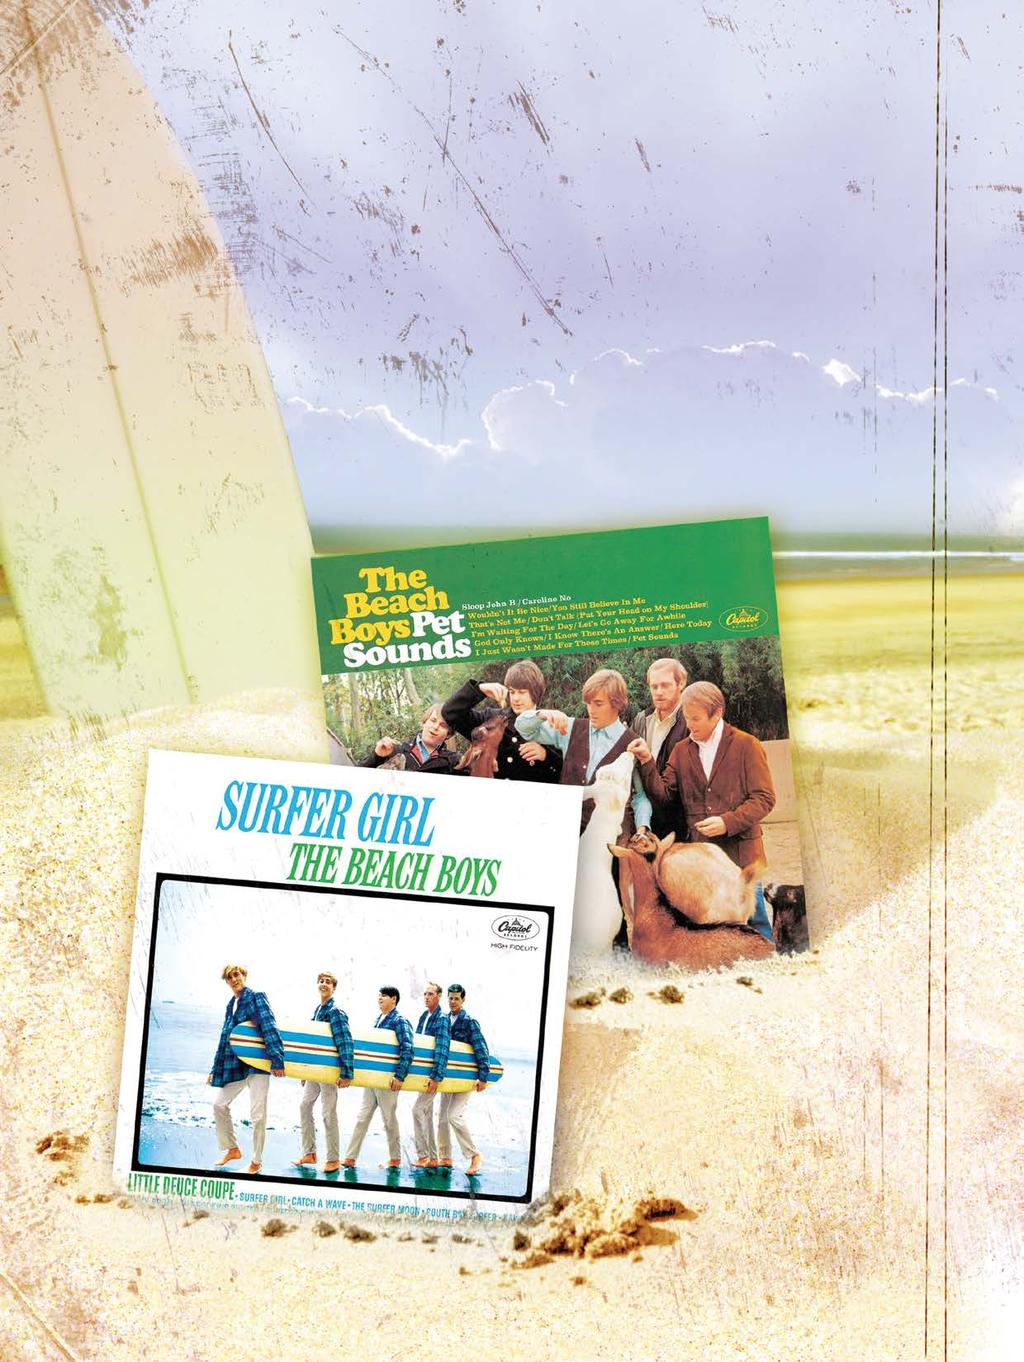 Wouldn t Nice? It Be Time To Out! Find Analogue Productions is going surfin! Come join the fun with 14 of The Beach Boys classic titles, beautifully remastered by Kevin Gray at CoHEARent Audio.